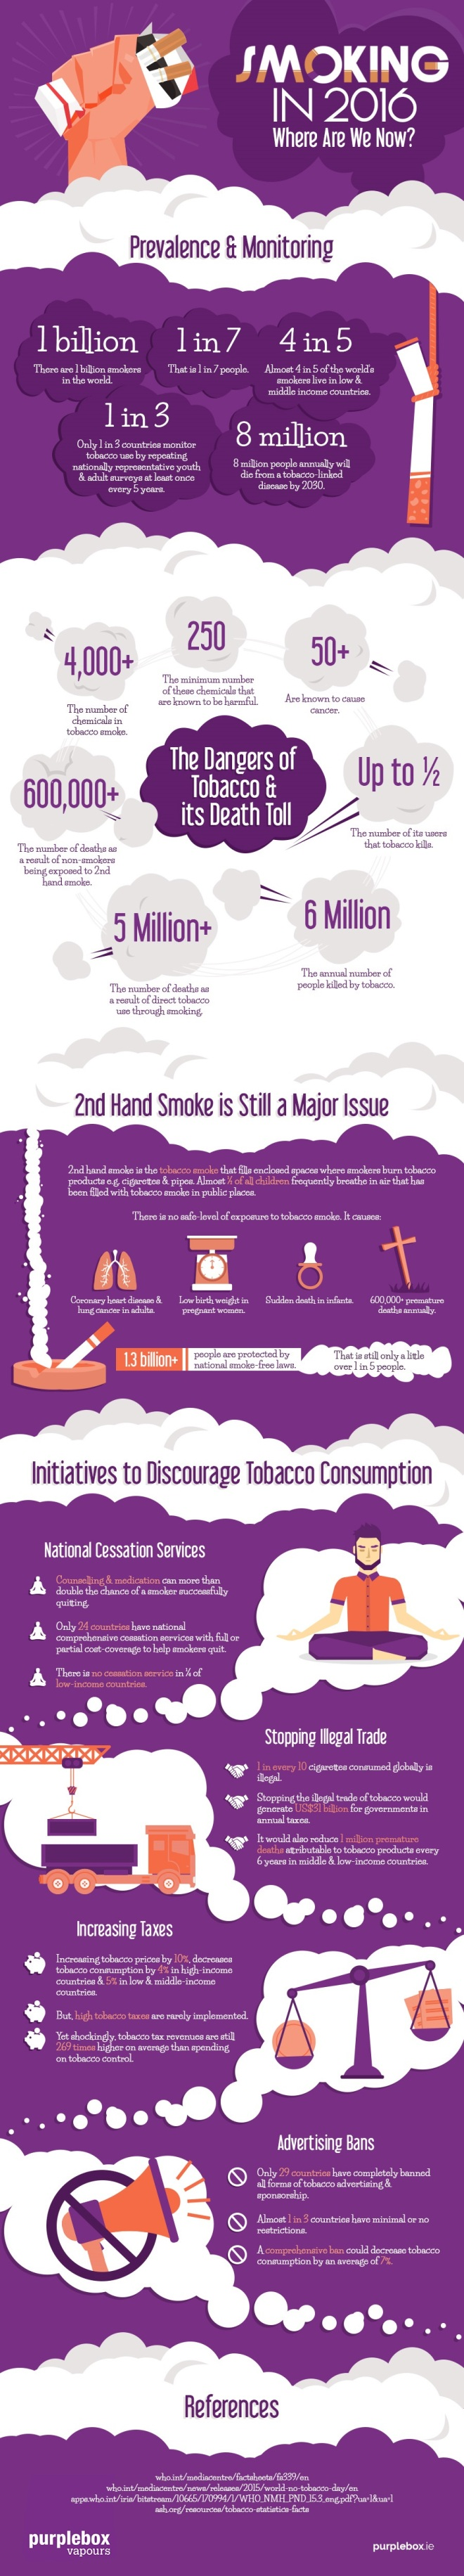 (Infographic) Smoking in 2016, Where Are We Now